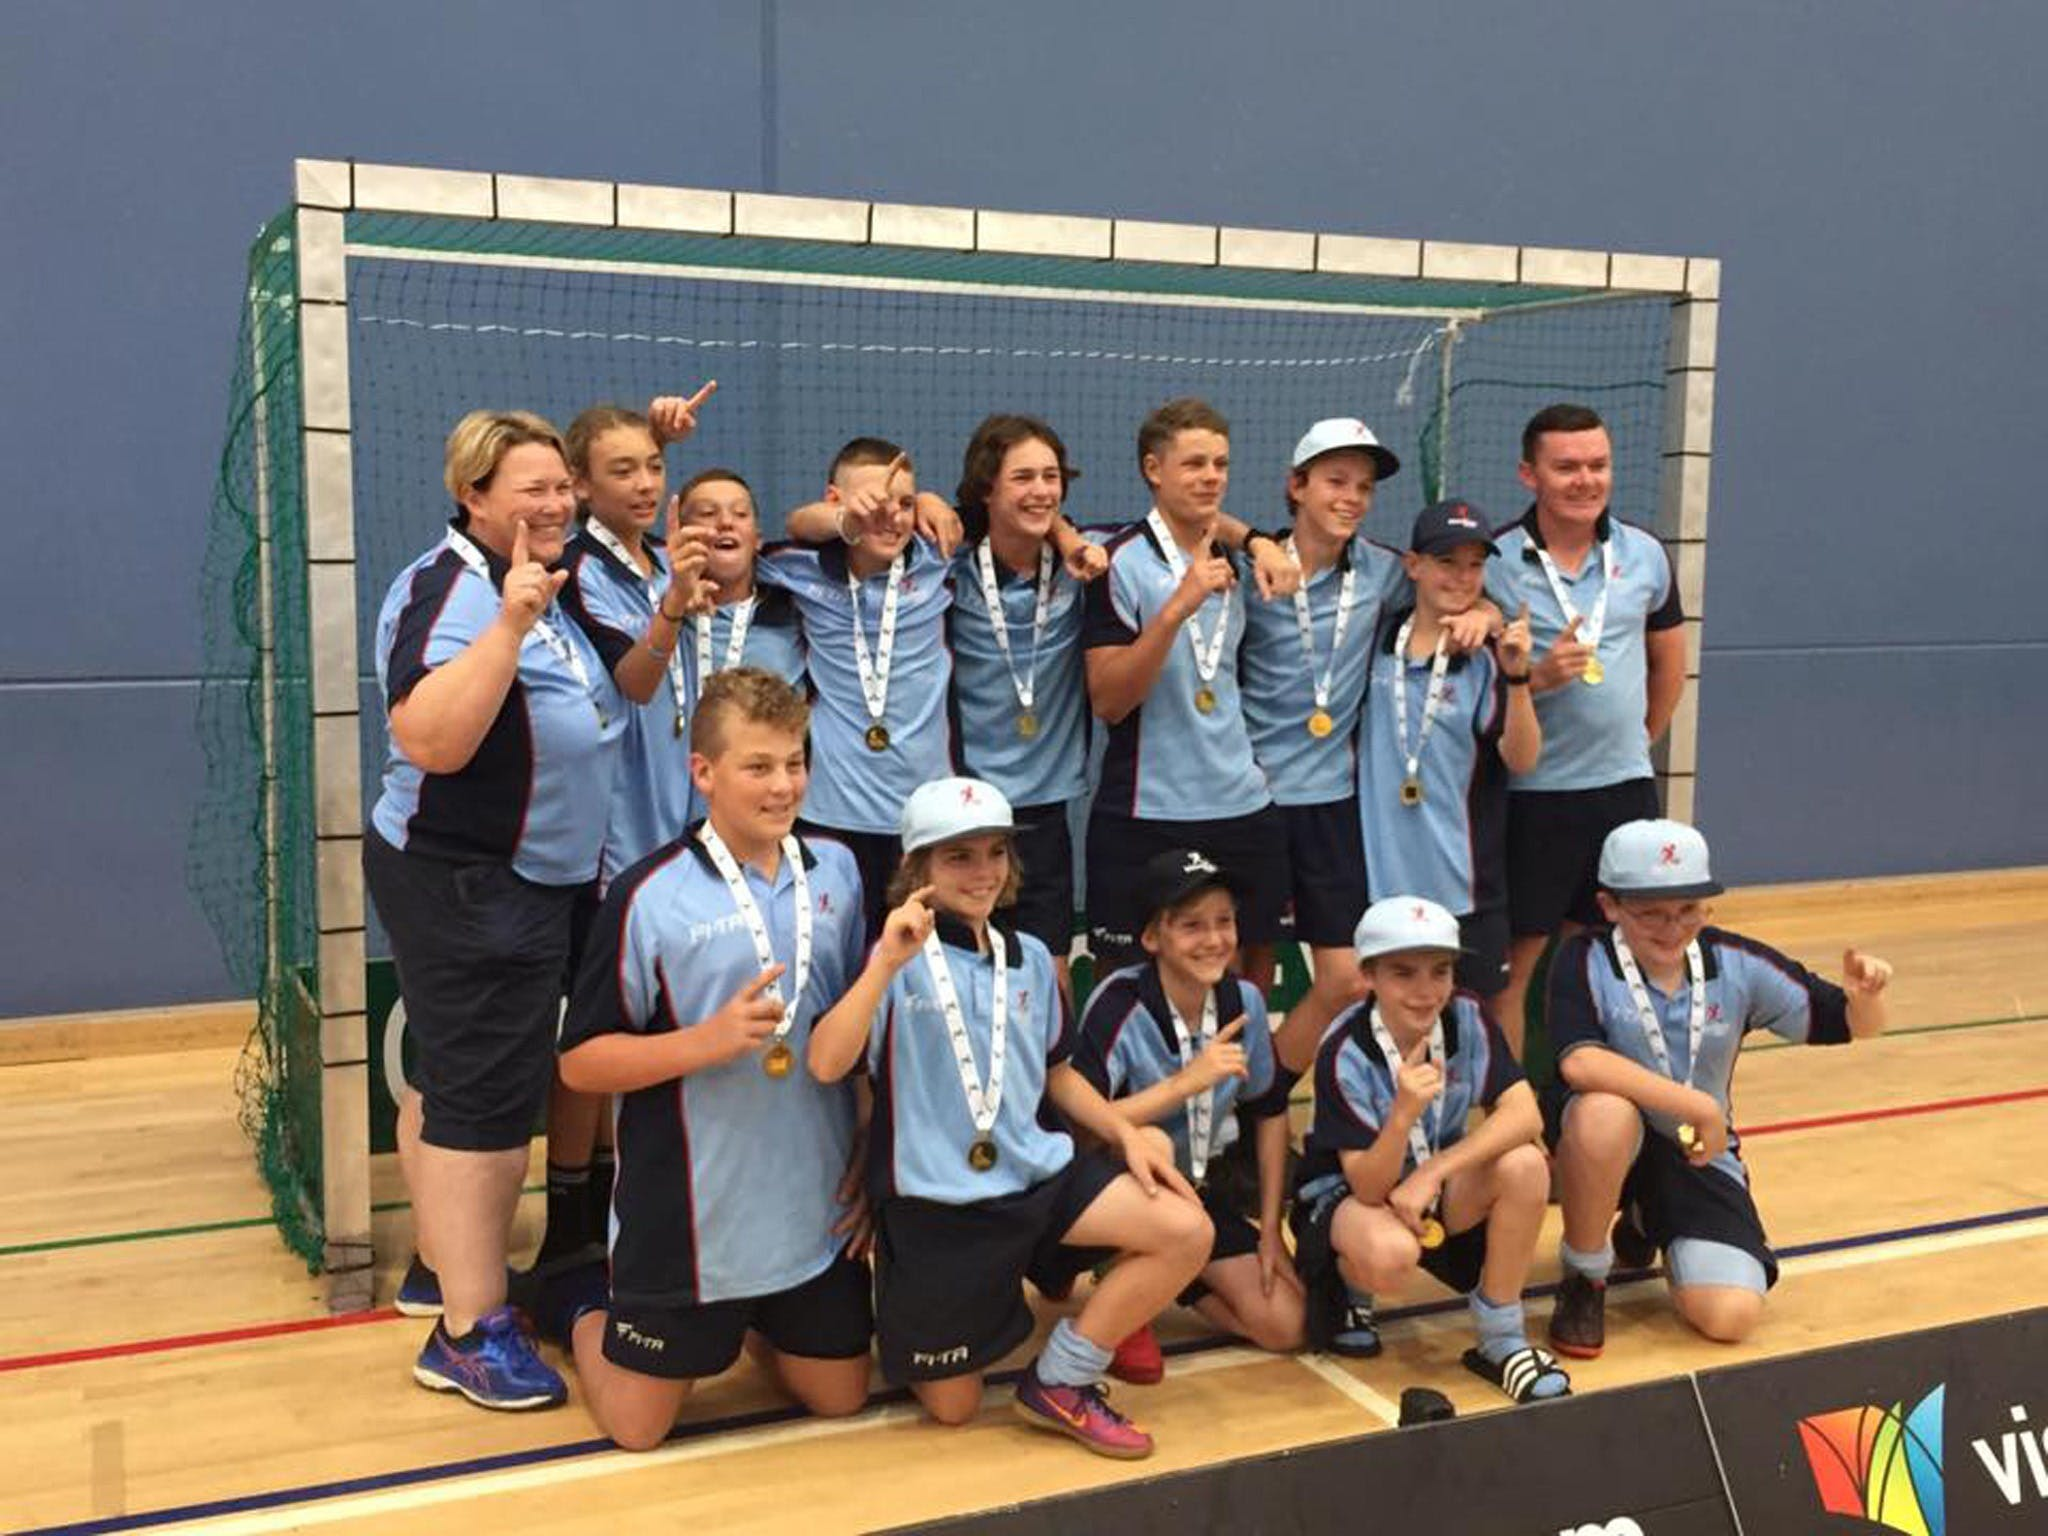 Hockey NSW Indoor State Championship  Under 18 Boys - Newcastle Accommodation